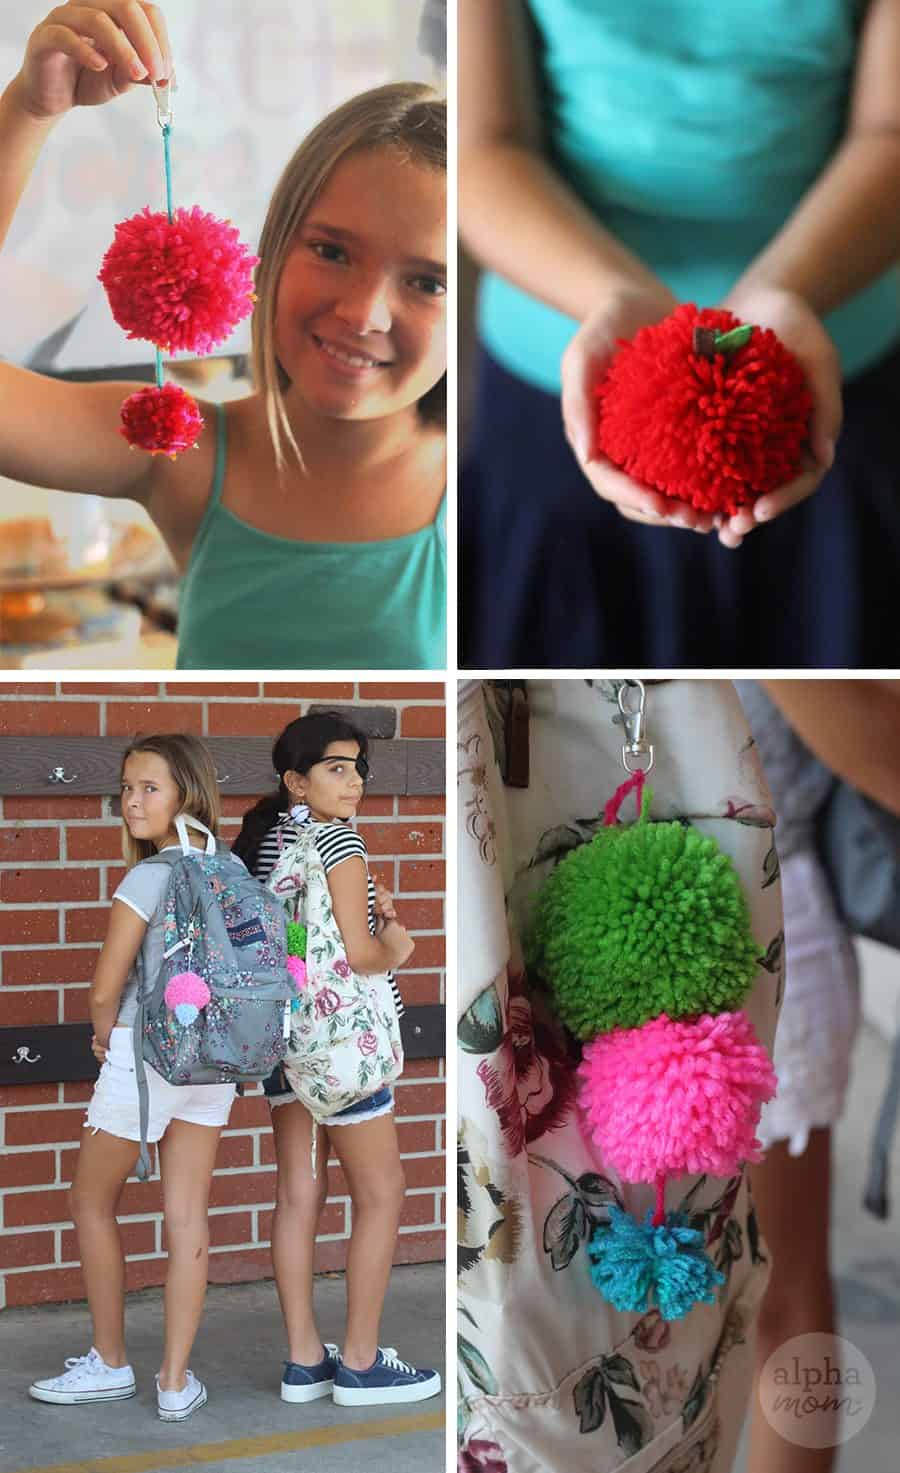 two girls showing off different pom pom crafts